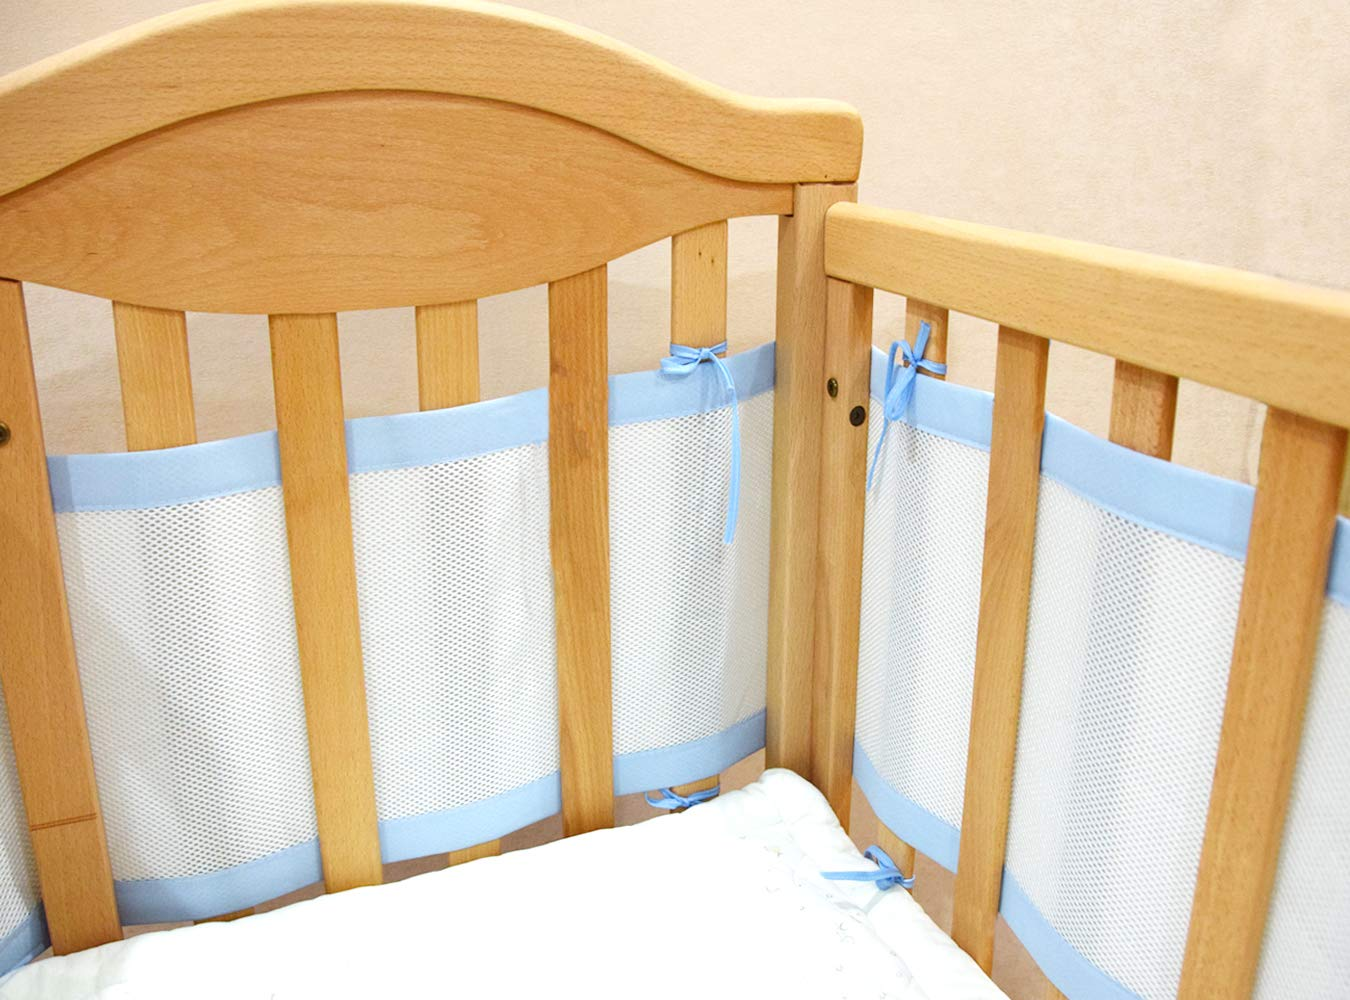 Breathable Mesh Crib Liner. Prevents Babies from Getting Stuck in Crib Slats, Blue